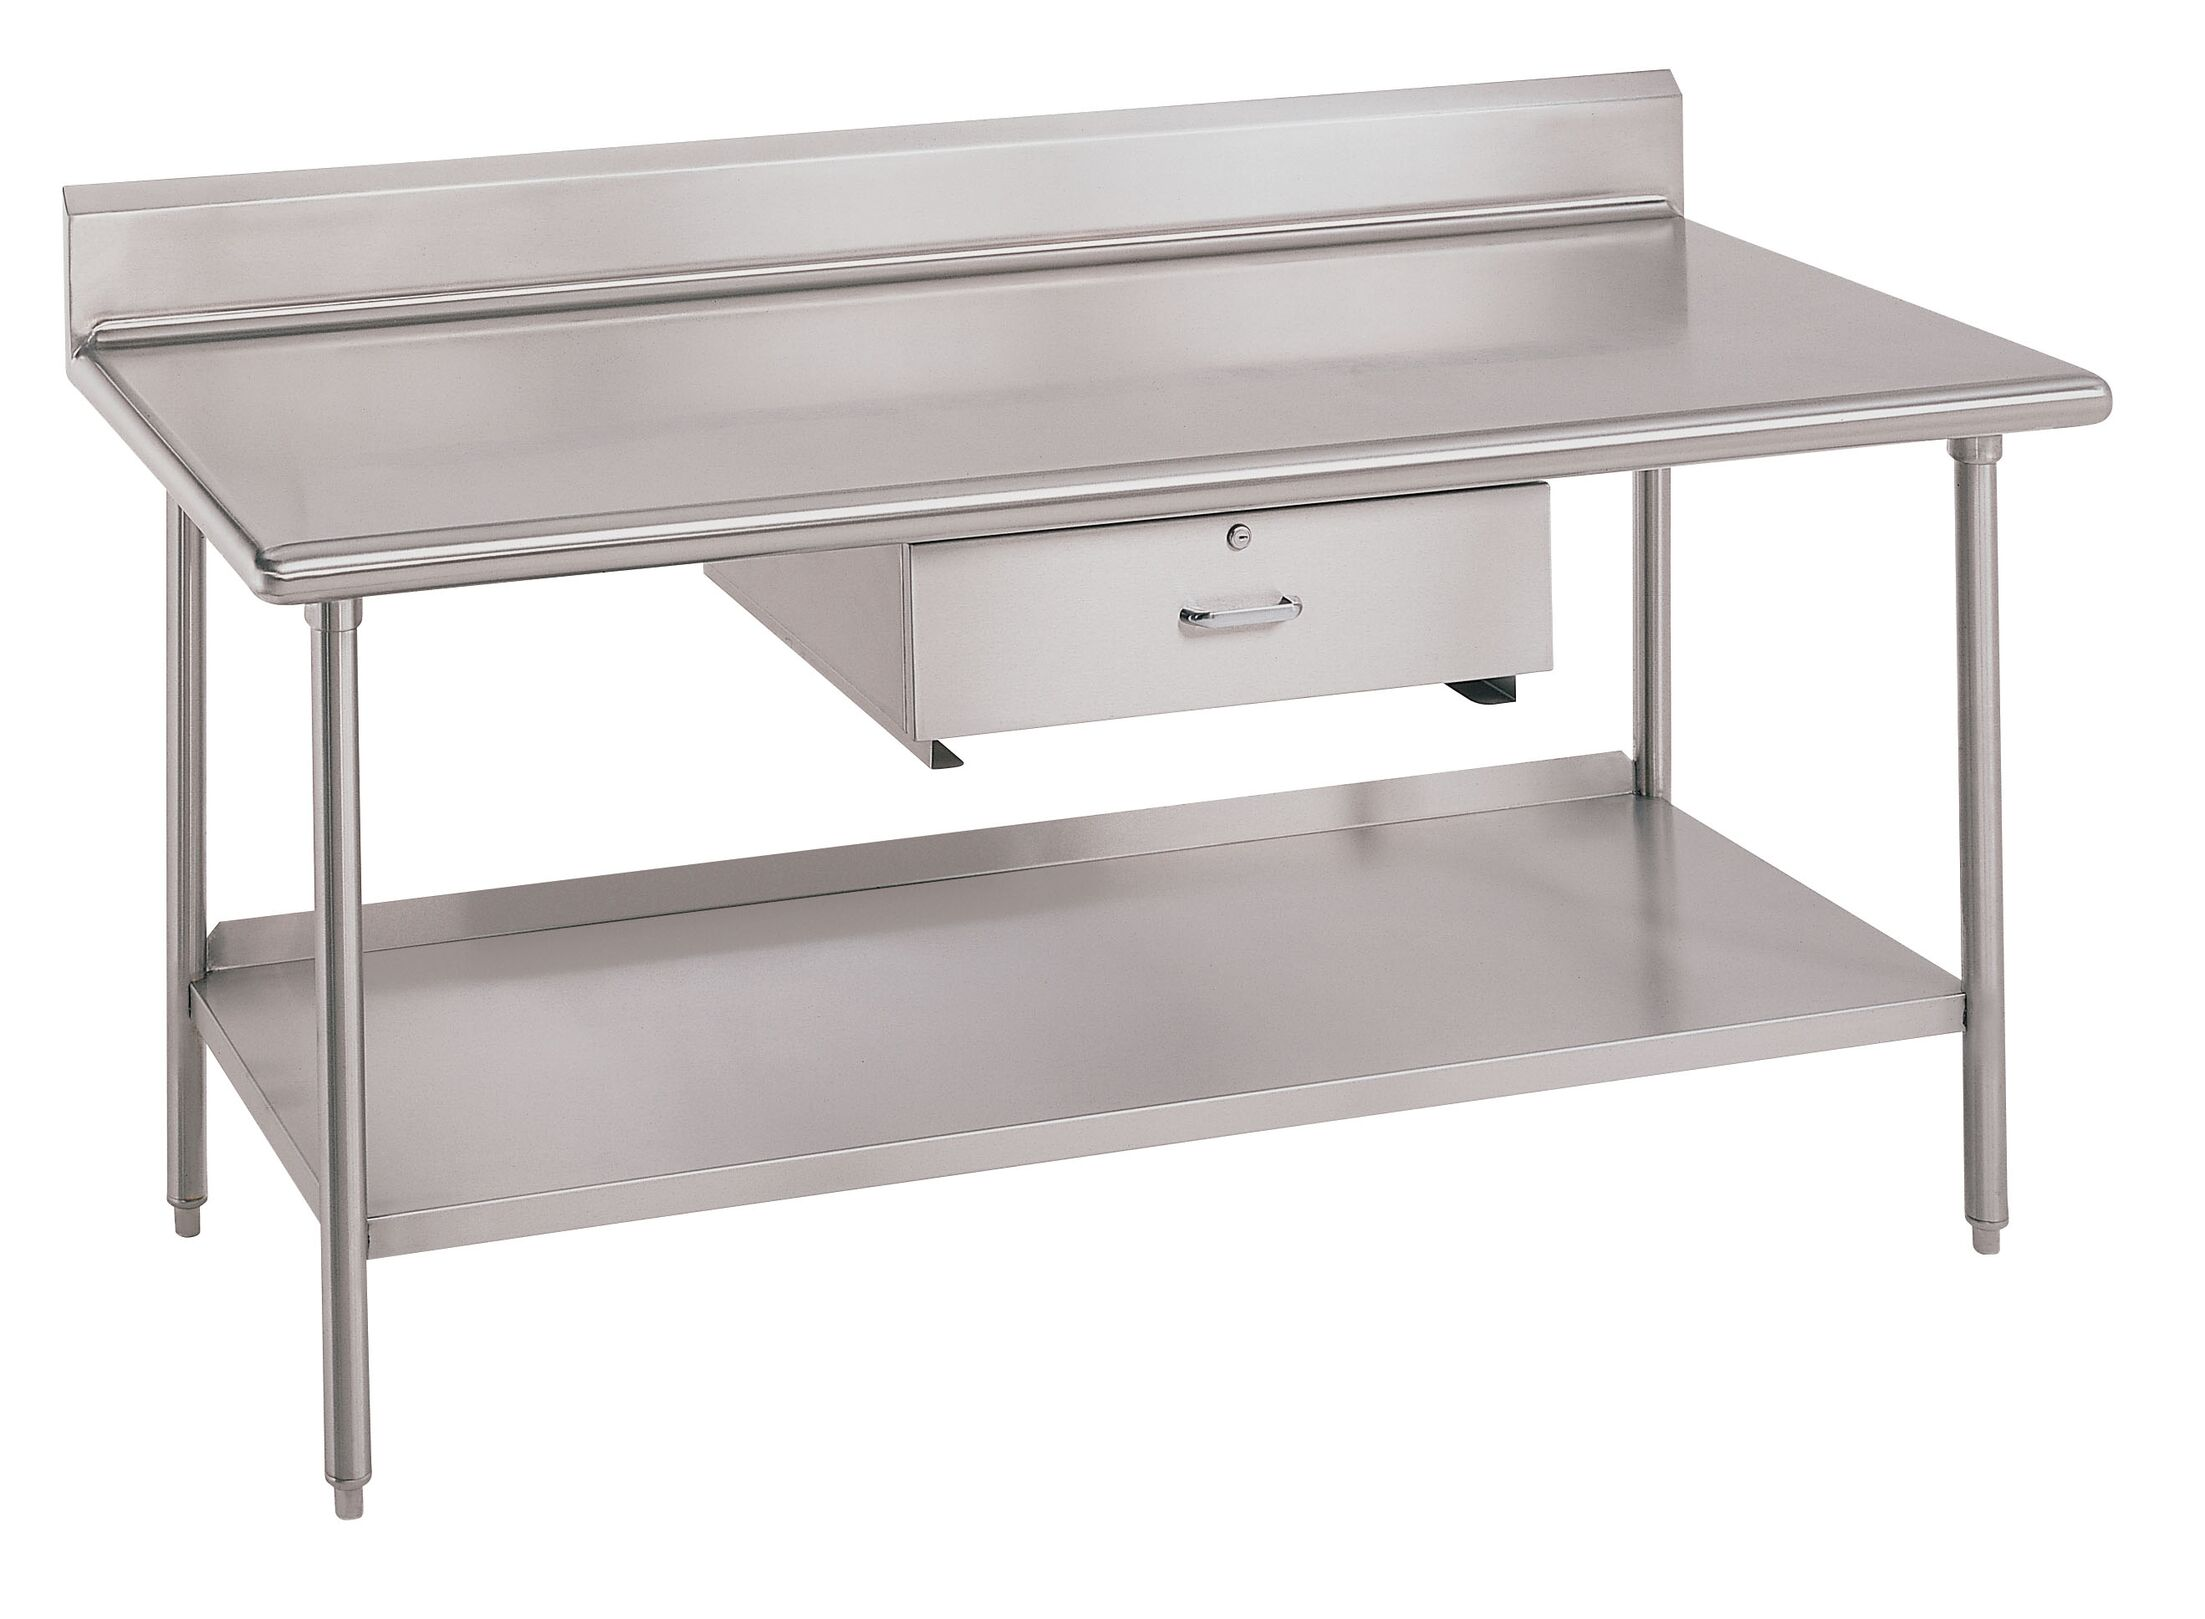 Worktable Utility Prep Table Size: 34